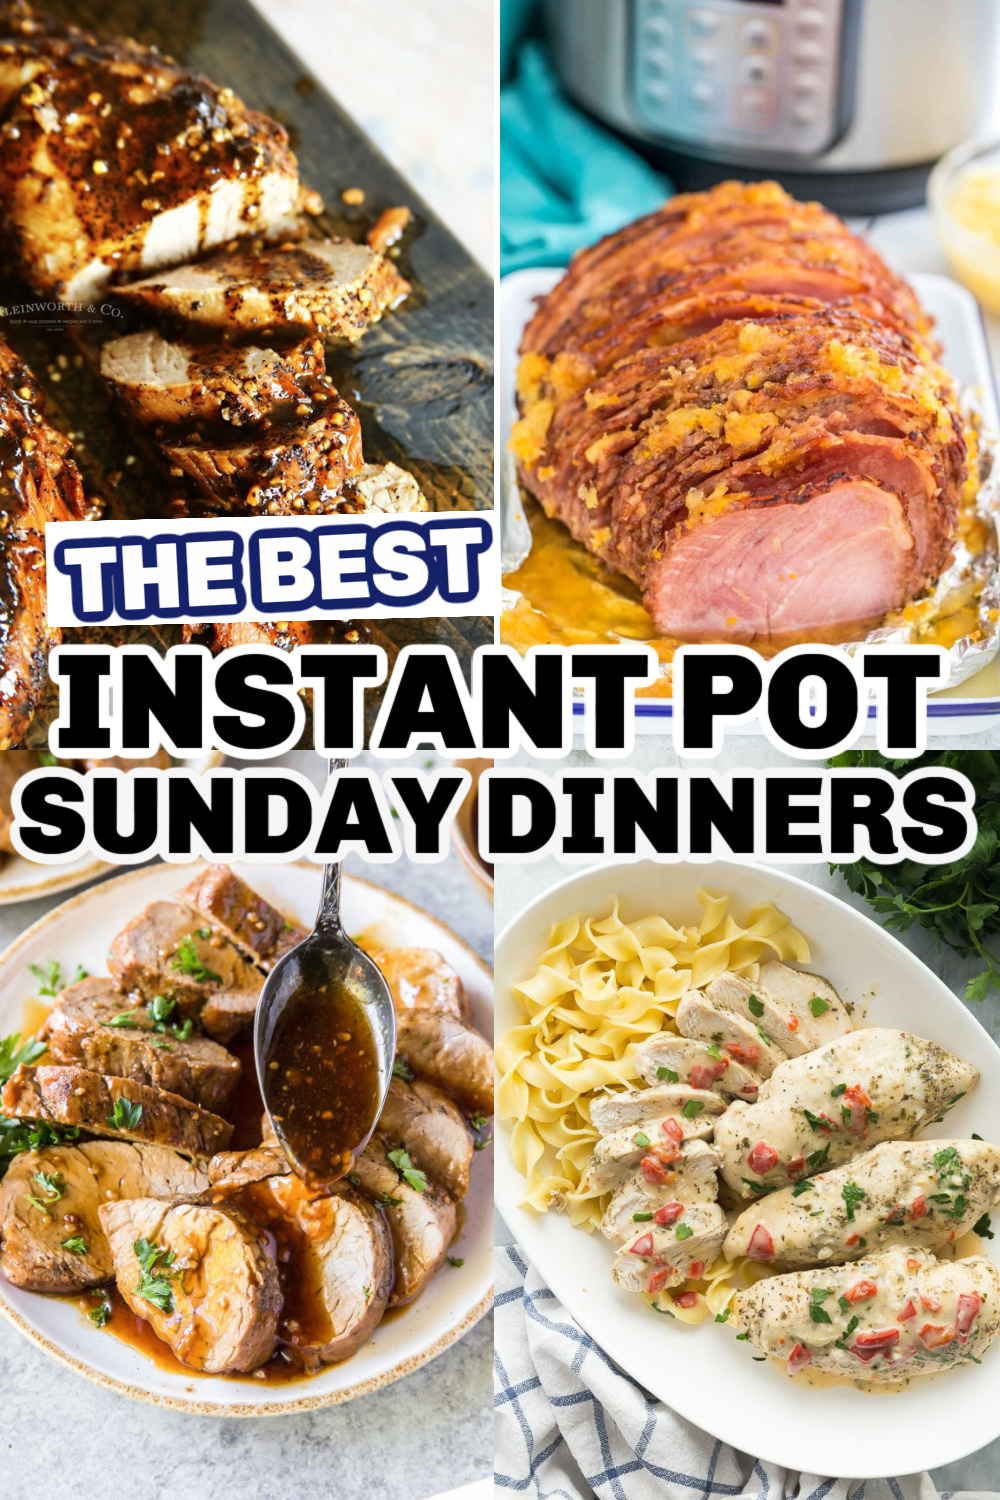 Instant pot recipes in a collage with words on top.